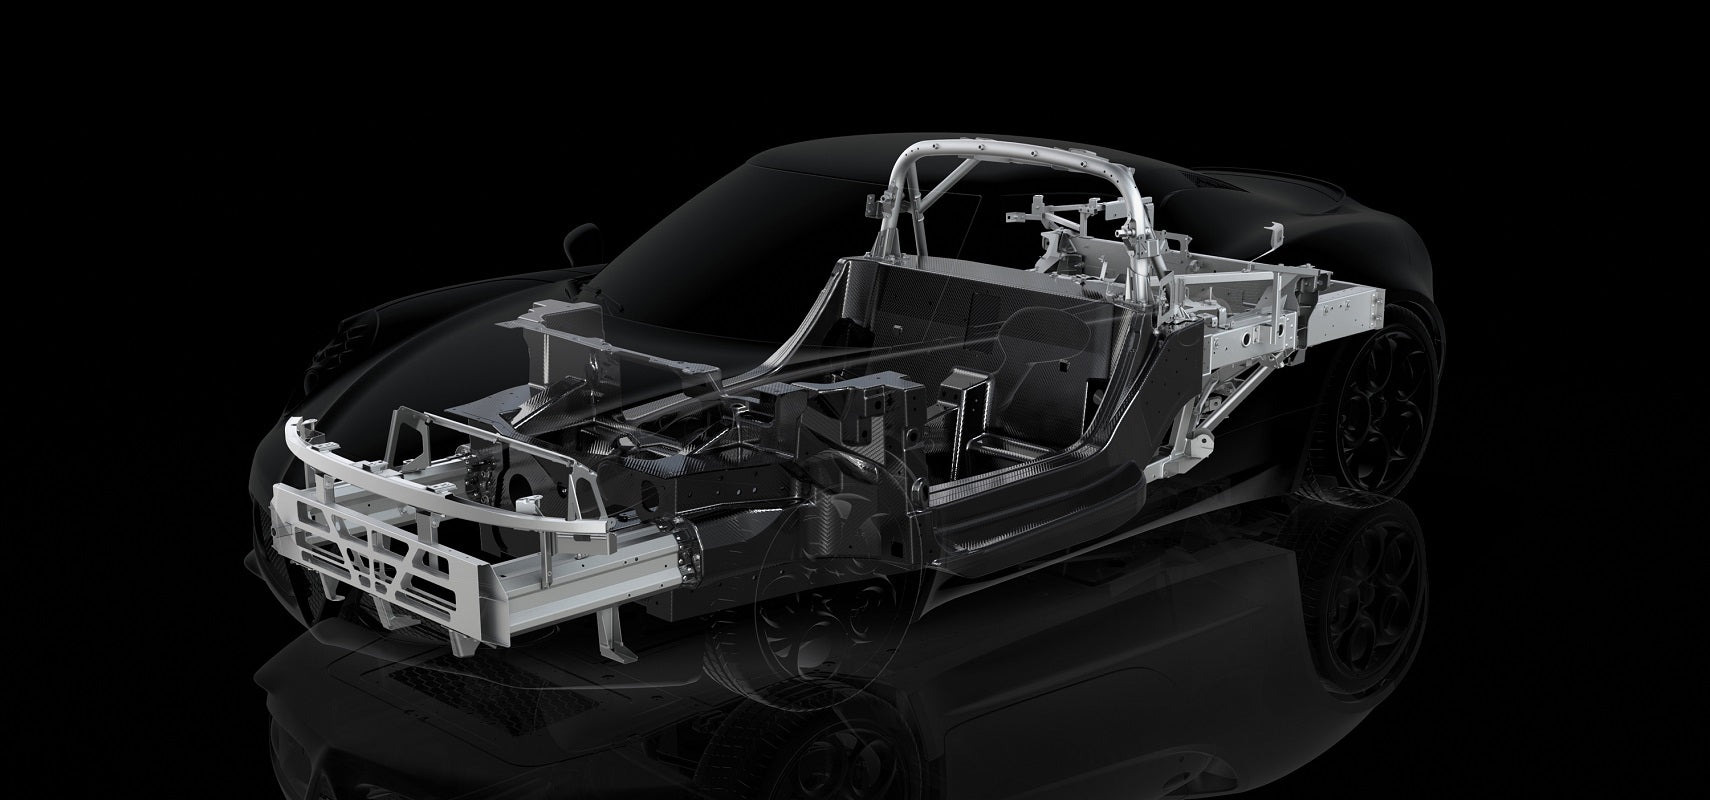 Alfa Romeo 4c Carbon Fiber Chassis Information